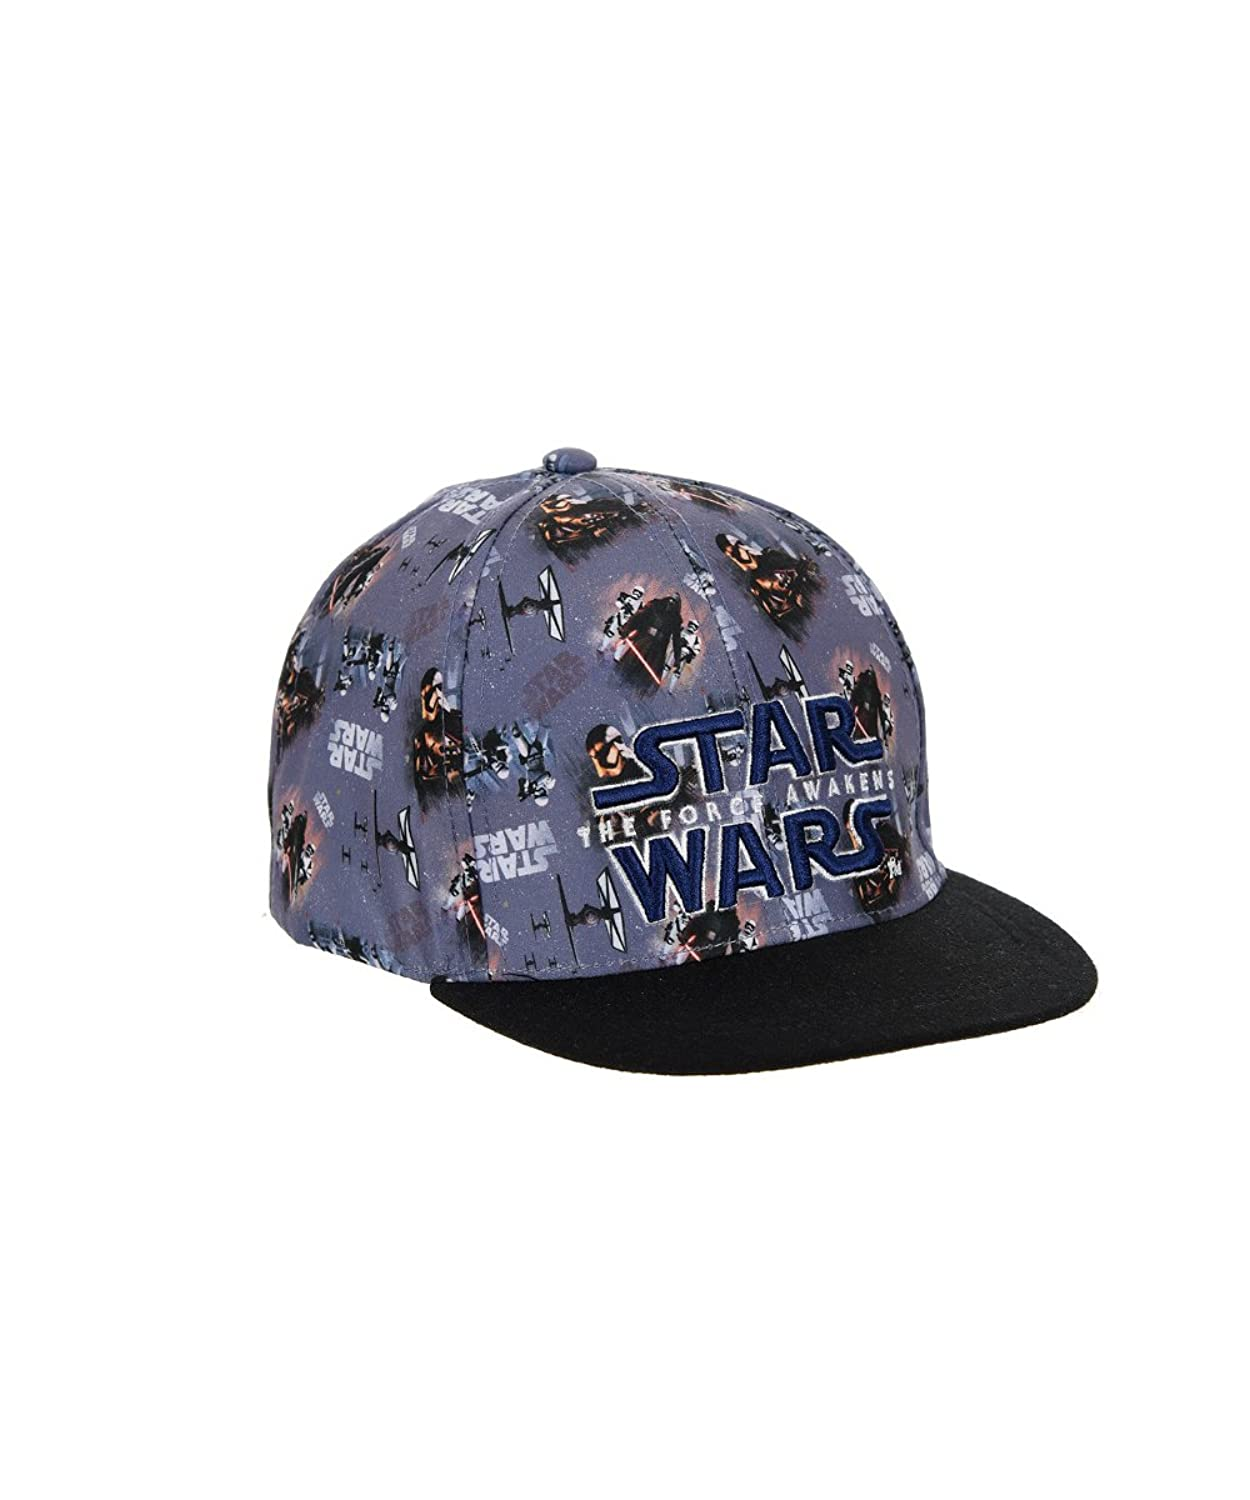 Bueno wreapped Star Wars Gorro - para niño - www.todocorazon.es 3fad33a8e61